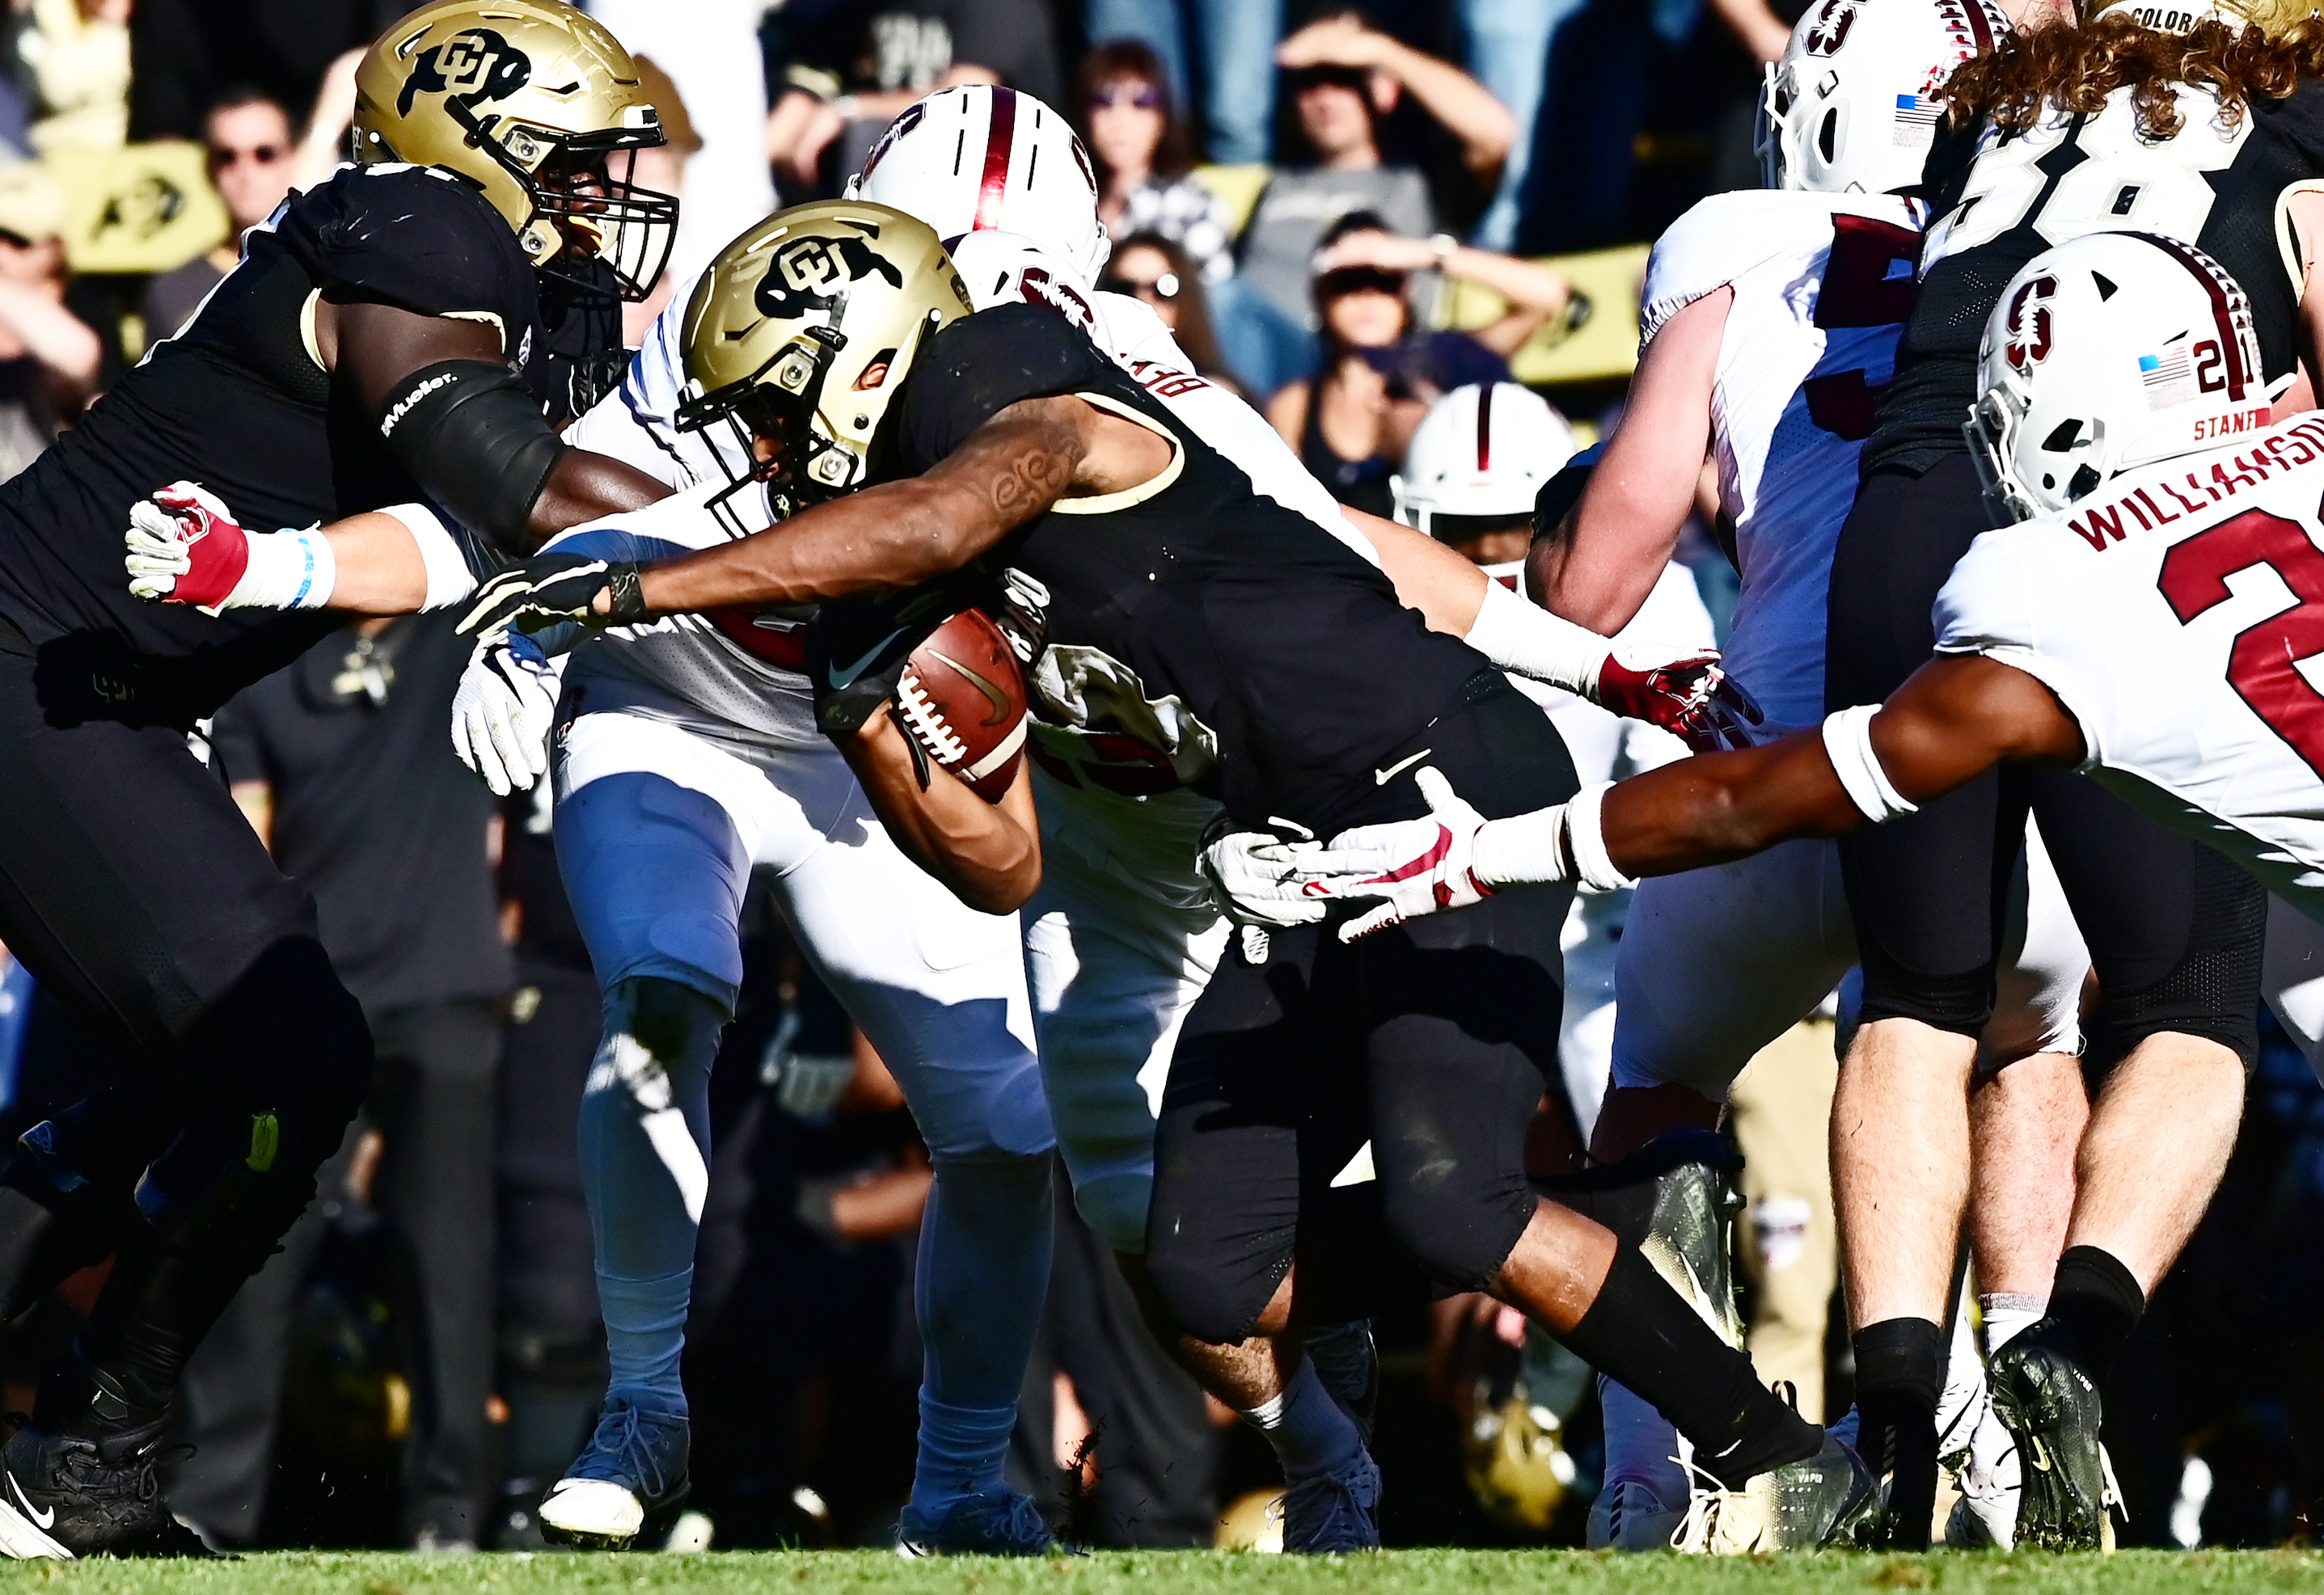 NCAA Football: Stanford at Colorado